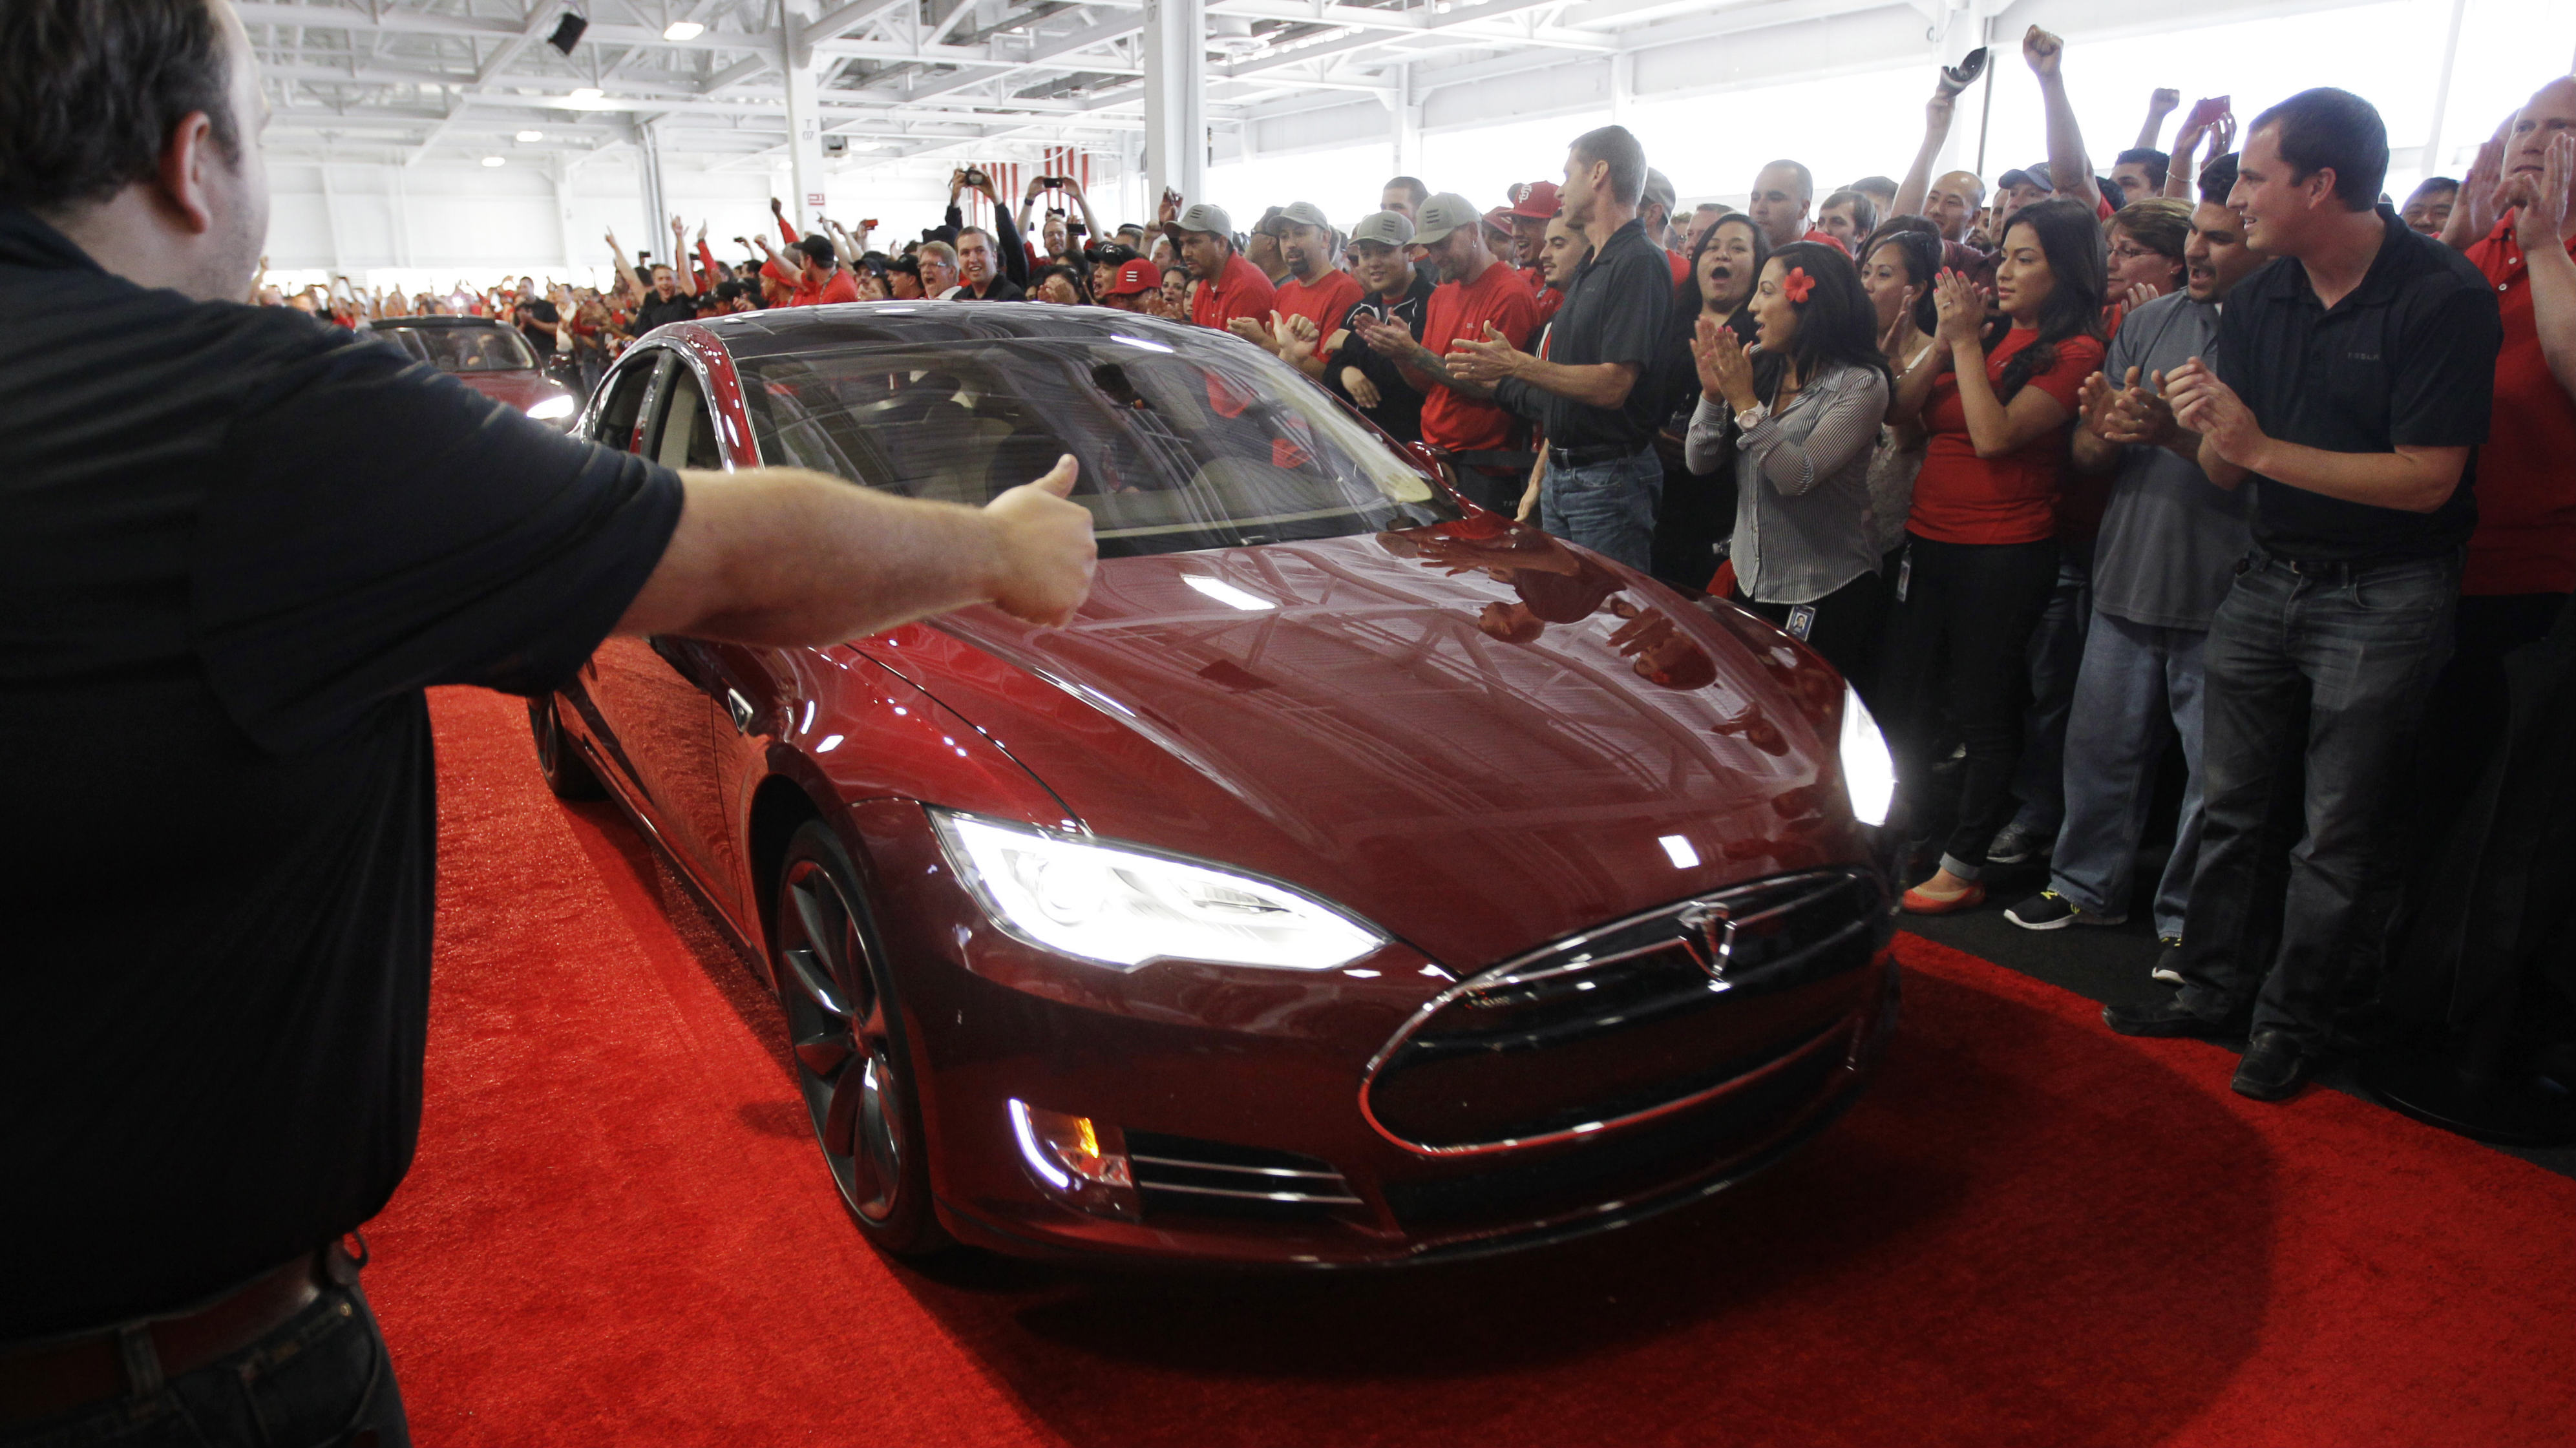 Tesla workers cheer on one the first Tesla Model S cars sold during a rally at the Tesla factory in Fremont, Calif., Friday, June 22, 2012. The first mass-market sedans offered by electric car maker Tesla are now on the road. (AP Photo/Paul Sakuma)